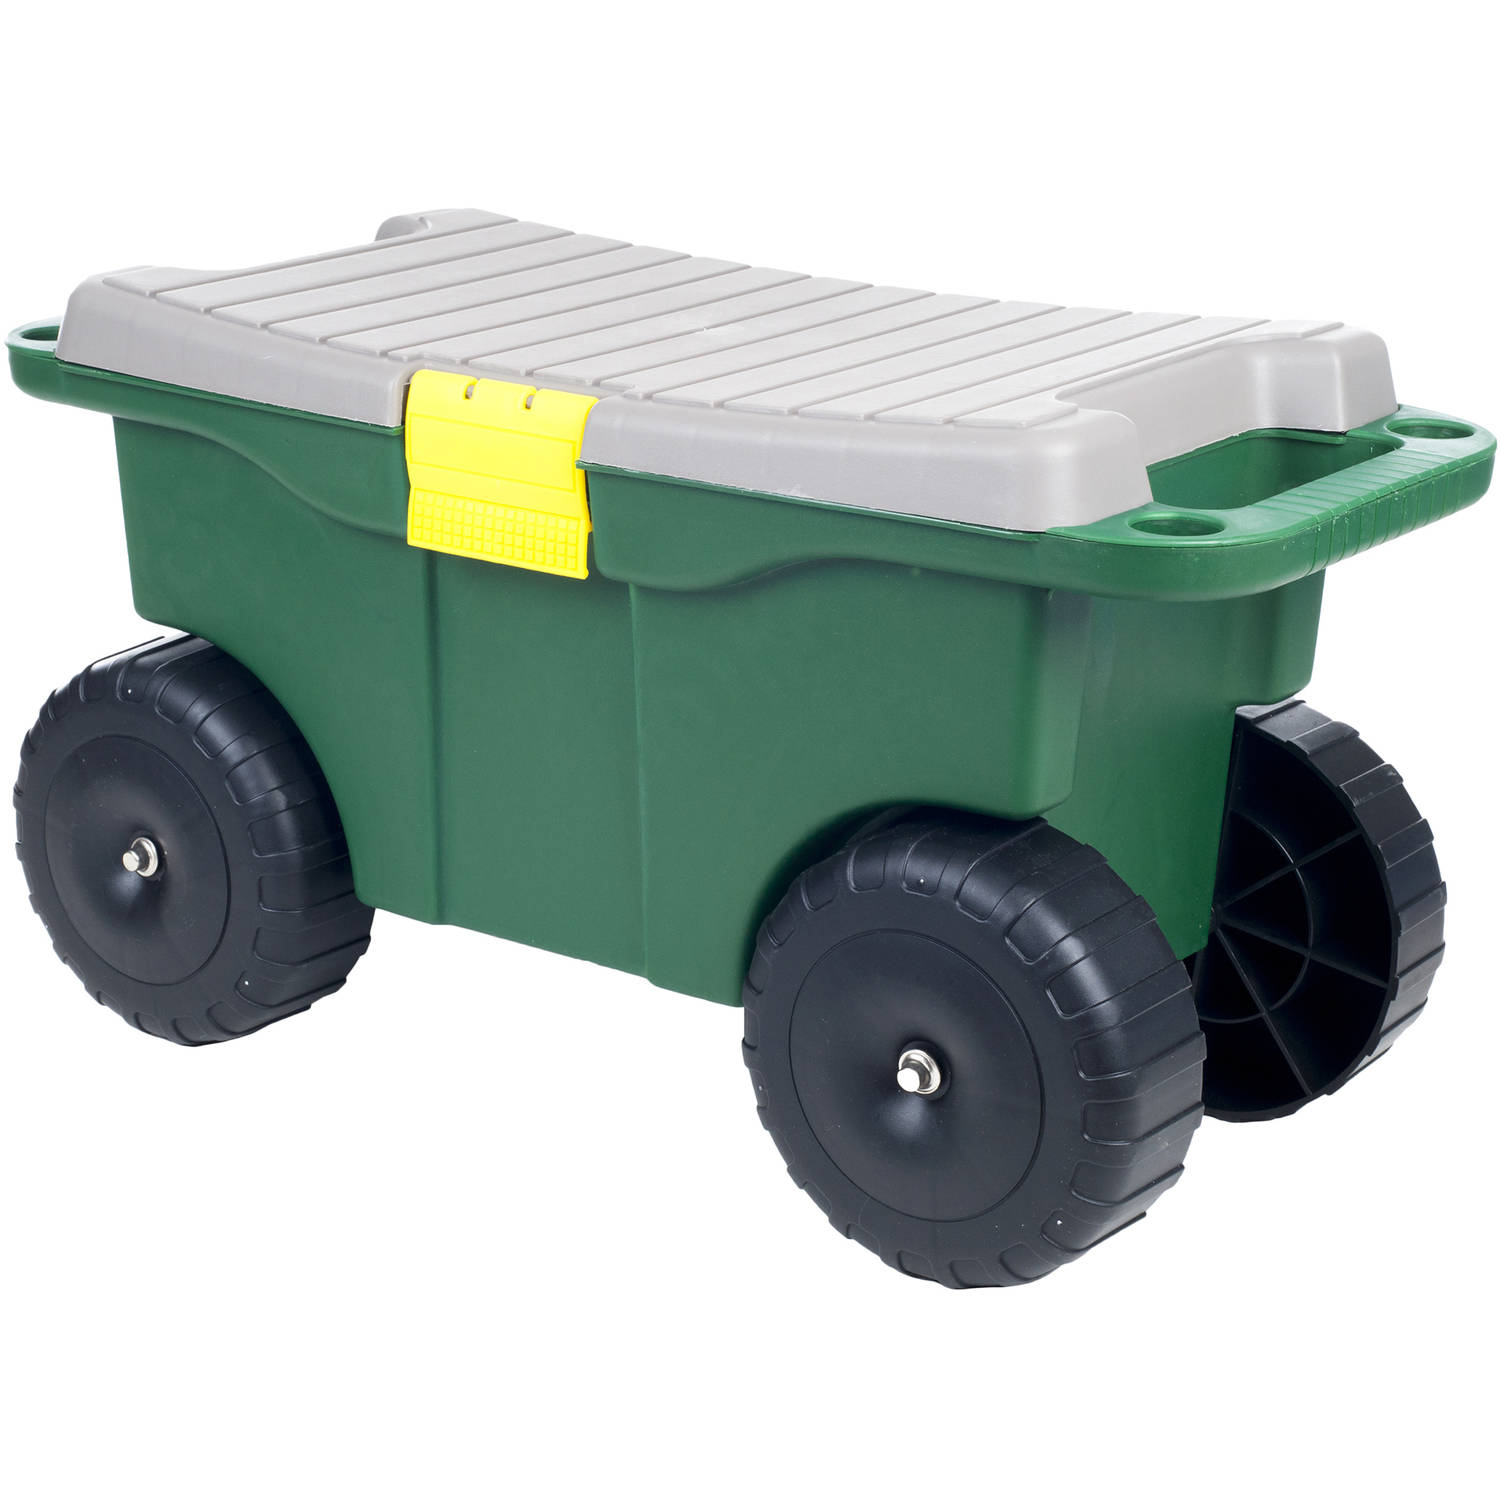 "Pure Garden 20"" Plastic Garden Storage Cart and Scooter by Trademark Global LLC"